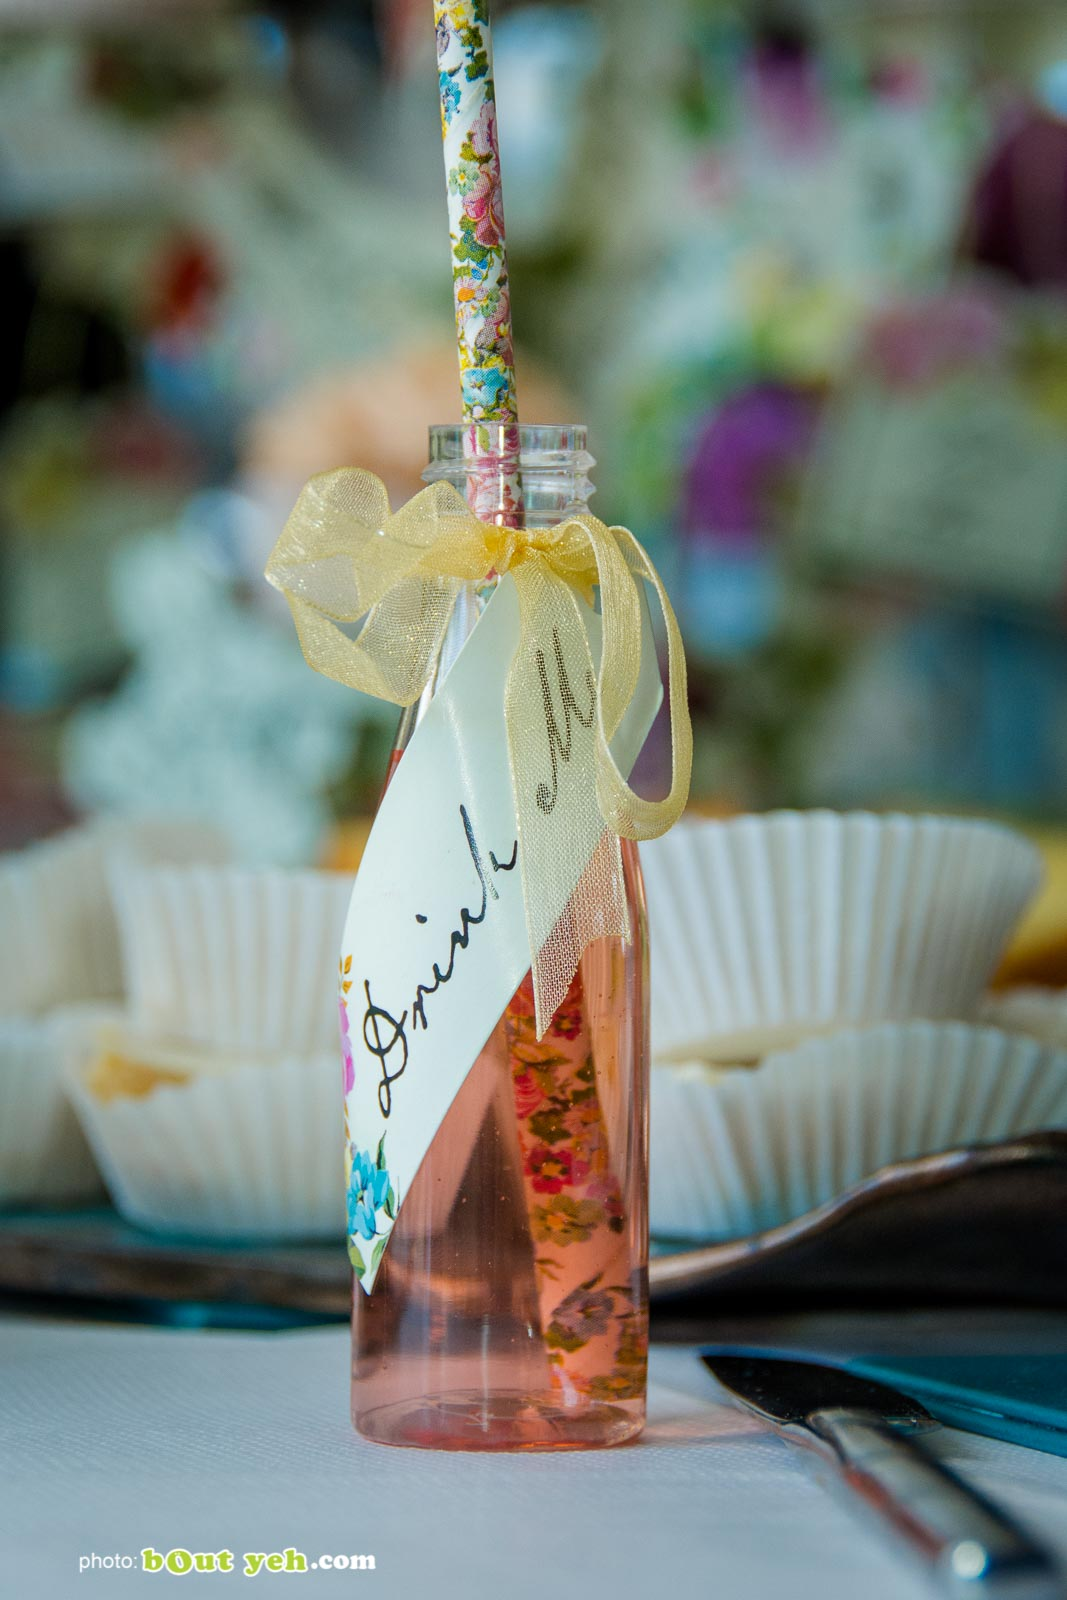 Drink Me words on small bottle at Bout Yeh Brexit Mad Hatters Tea Party photo 9268 - Bout Yeh photographers Belfast